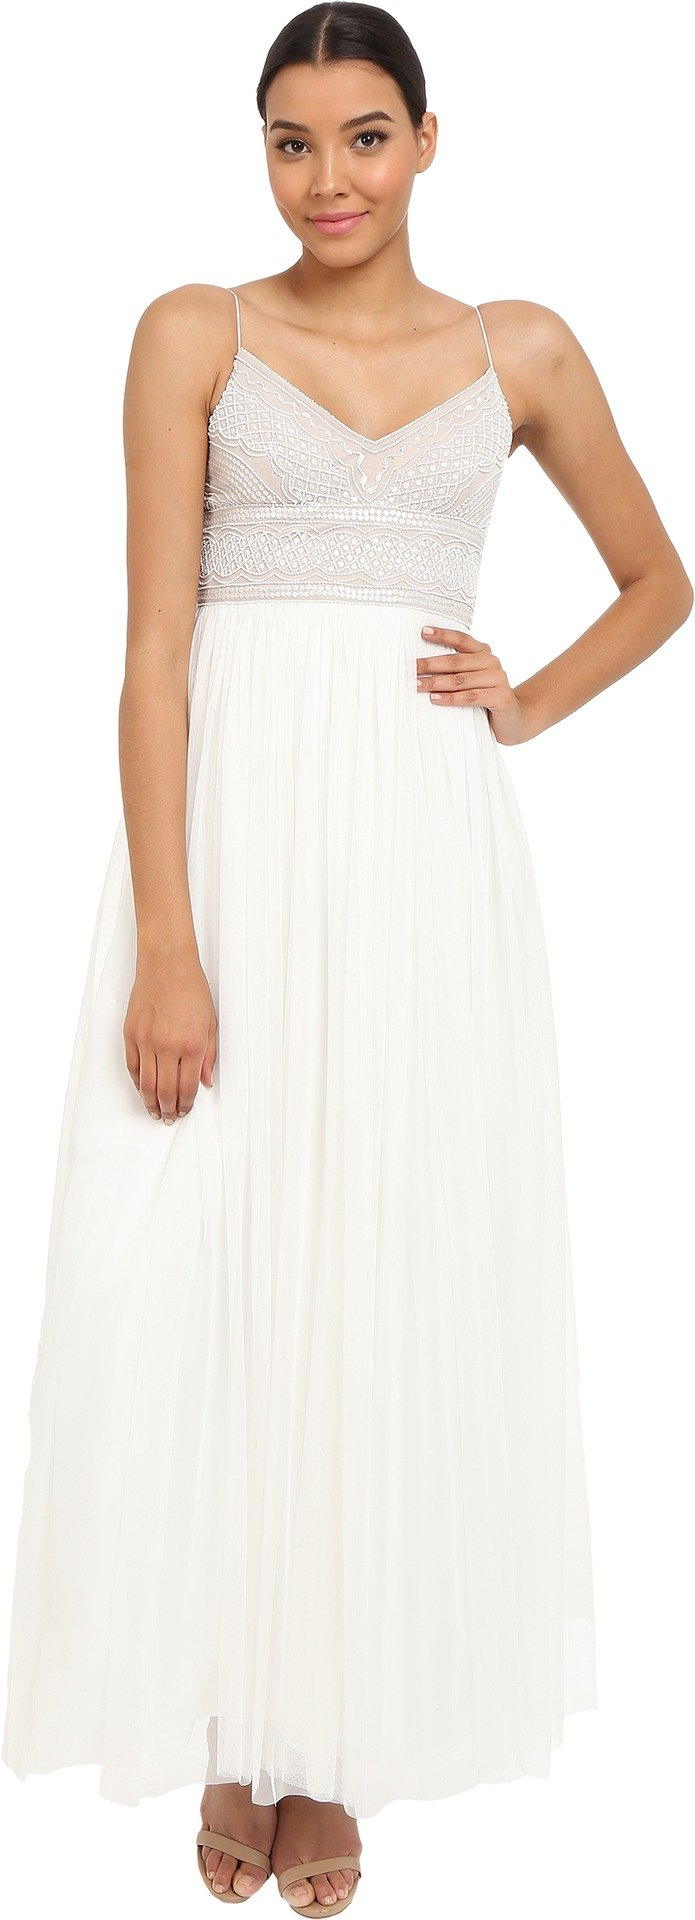 Adrianna Papell Women's Spaghetti Strap Beaded Dress Gown Dress, Ivory/Nude, 2